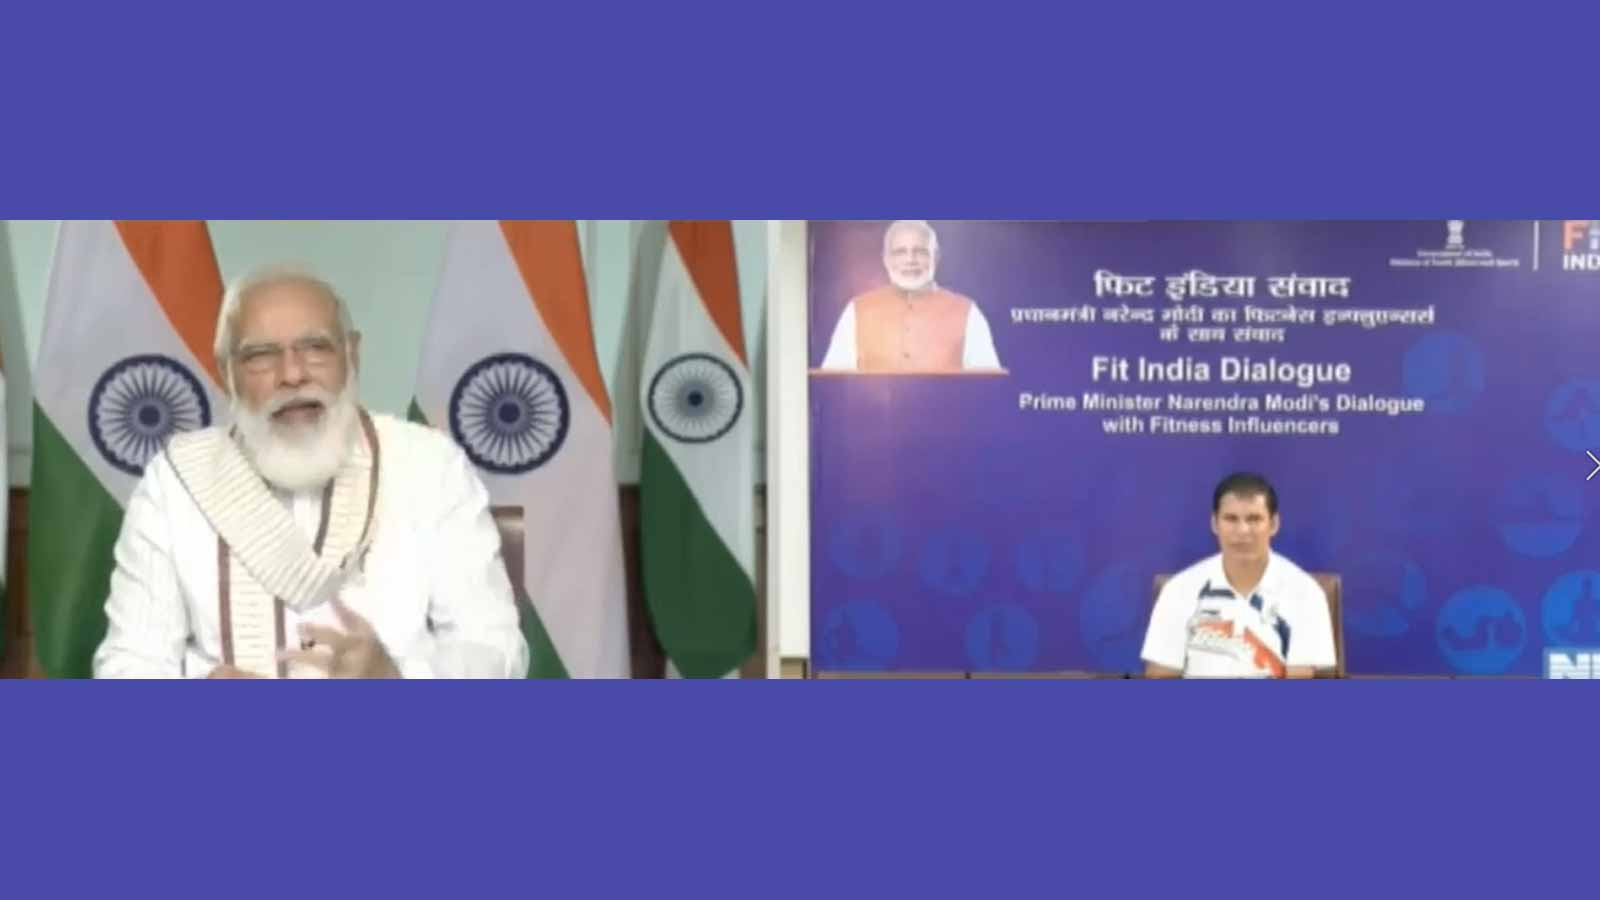 fit-india-dialogue-2020-pm-narendra-modi-interacts-with-paralympic-javelin-gold-medallist-devender-jhajharia